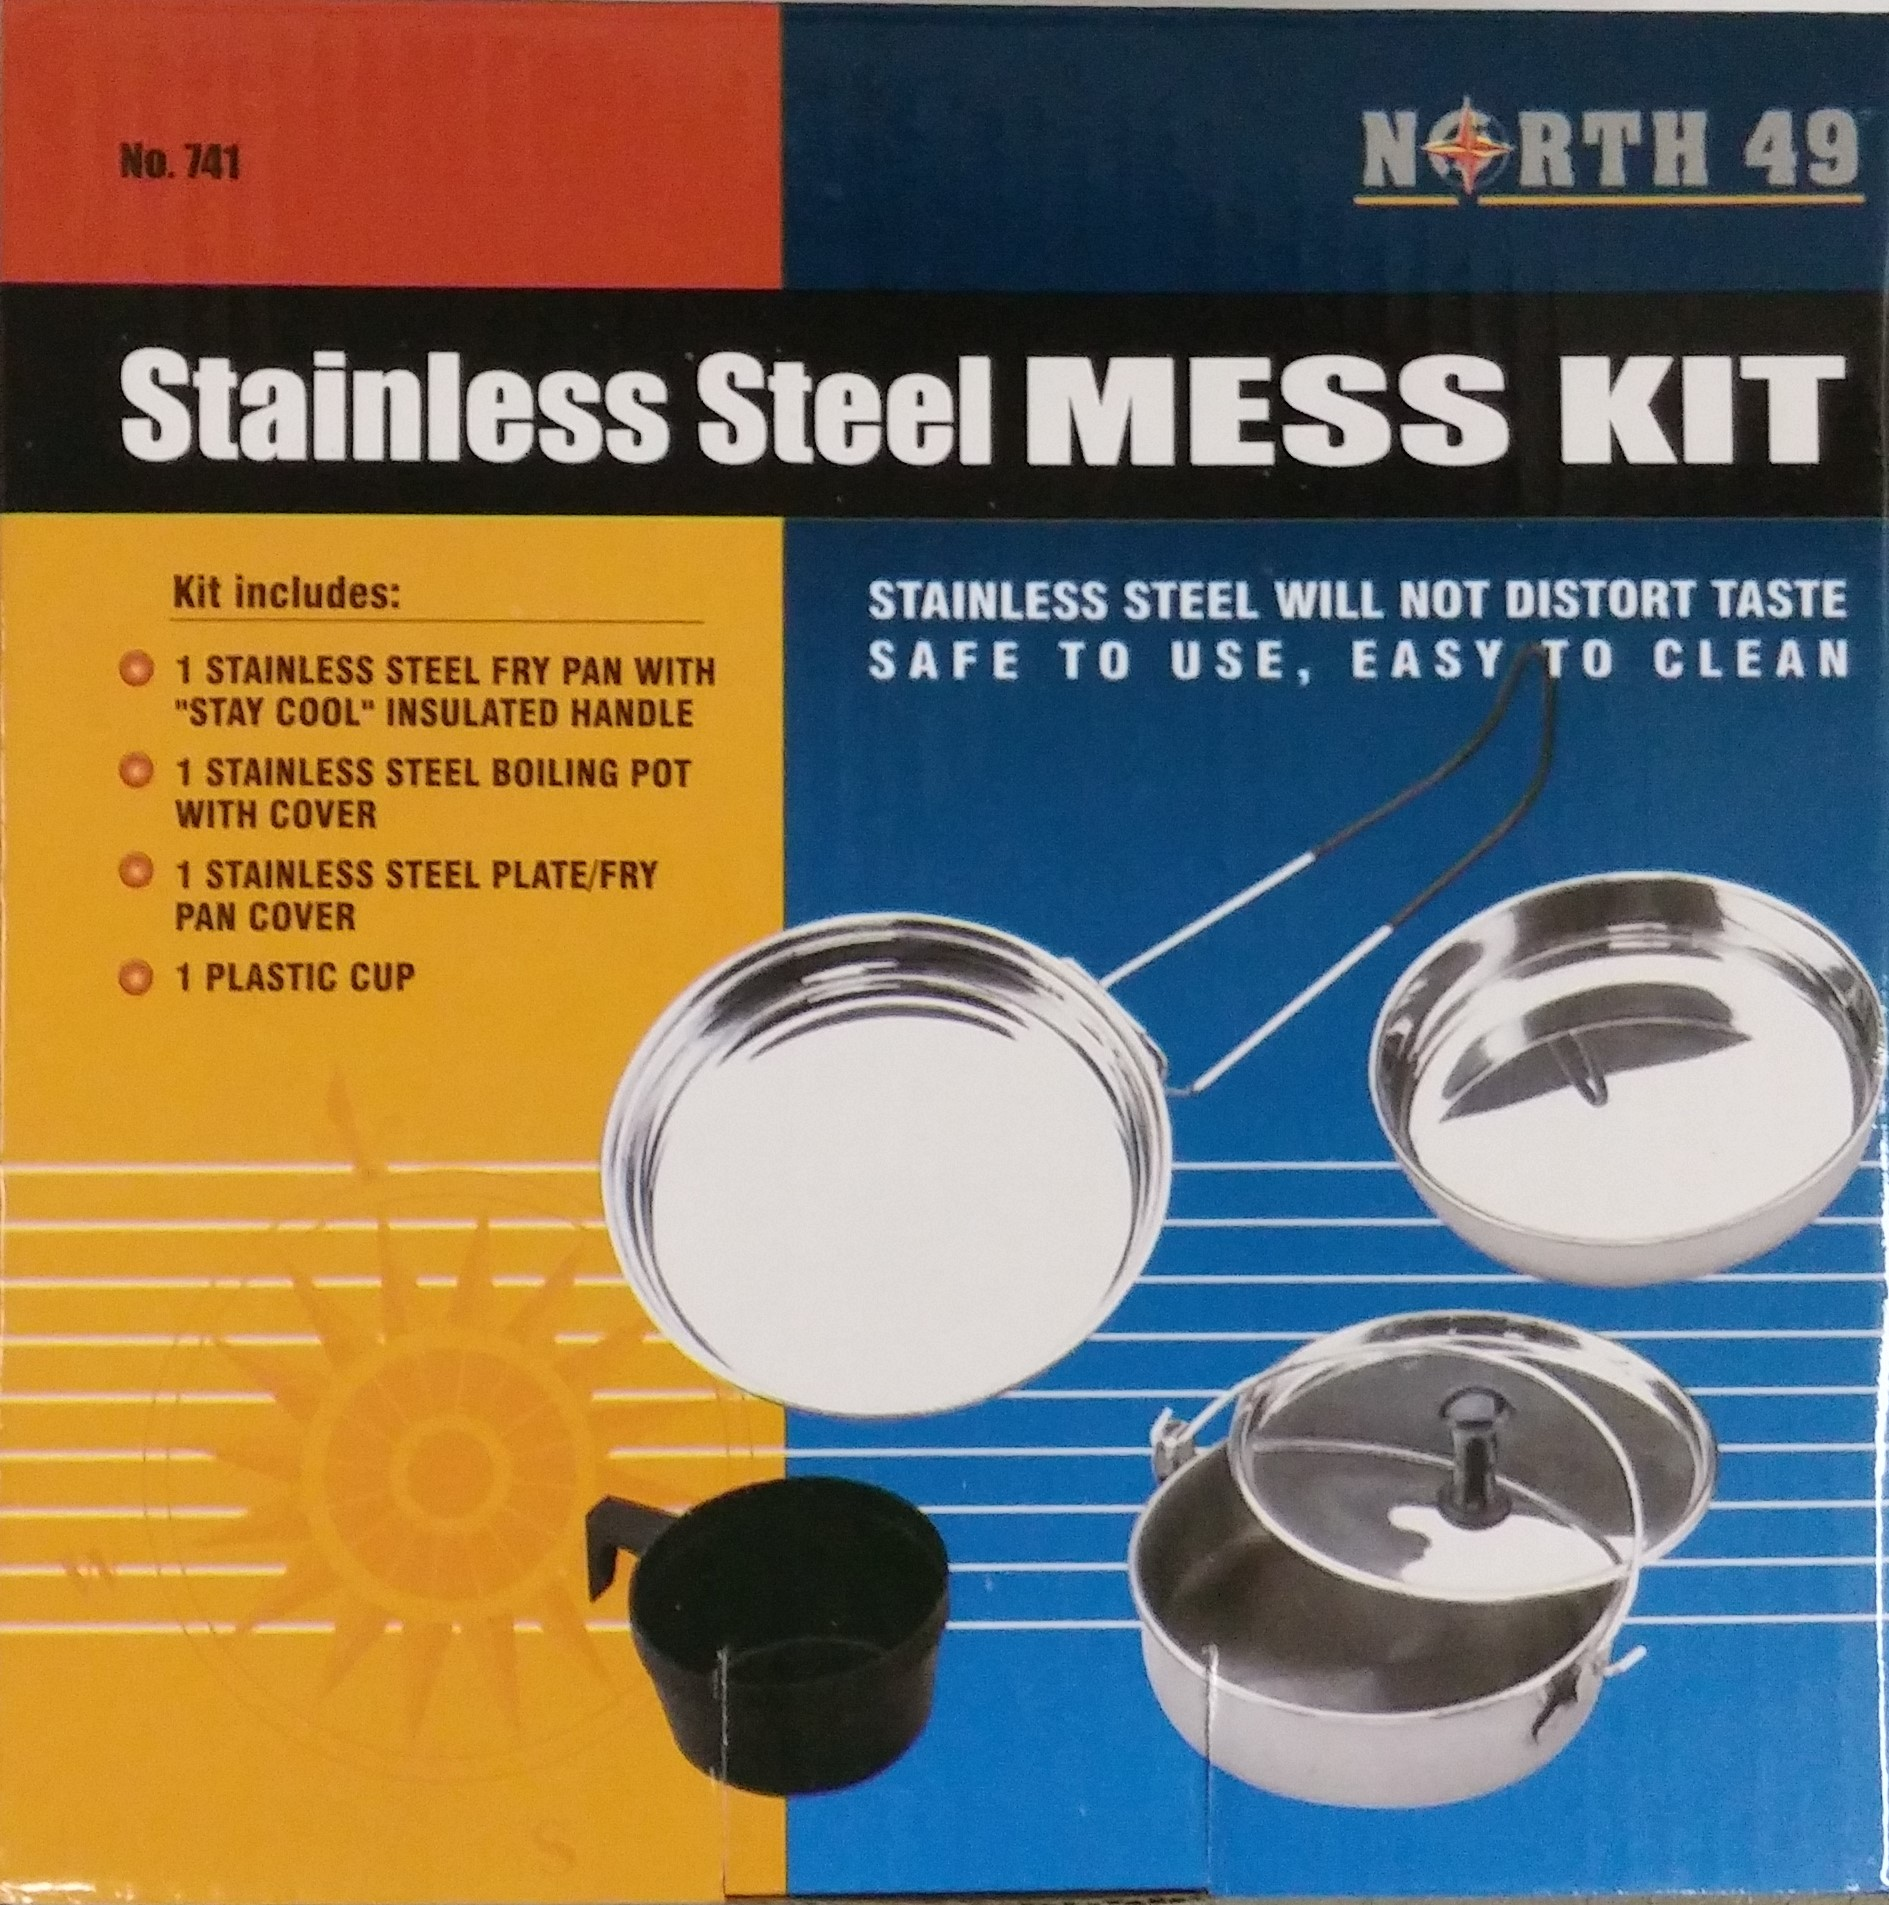 Stainless stell mess kit